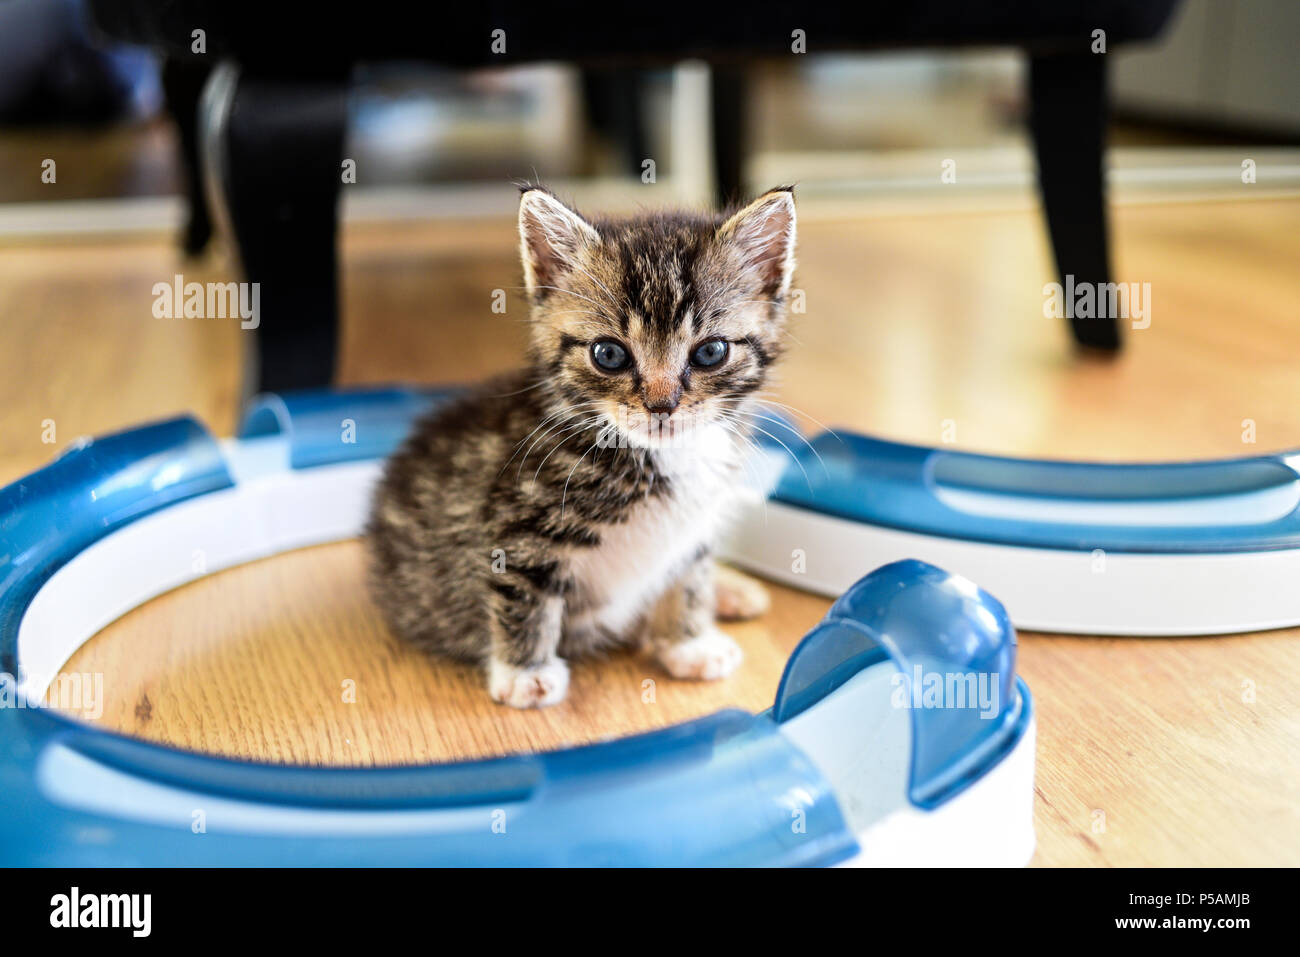 A small sweet tabby kitten with a toy.A small sweet tabby kitten with a toy. - Stock Image